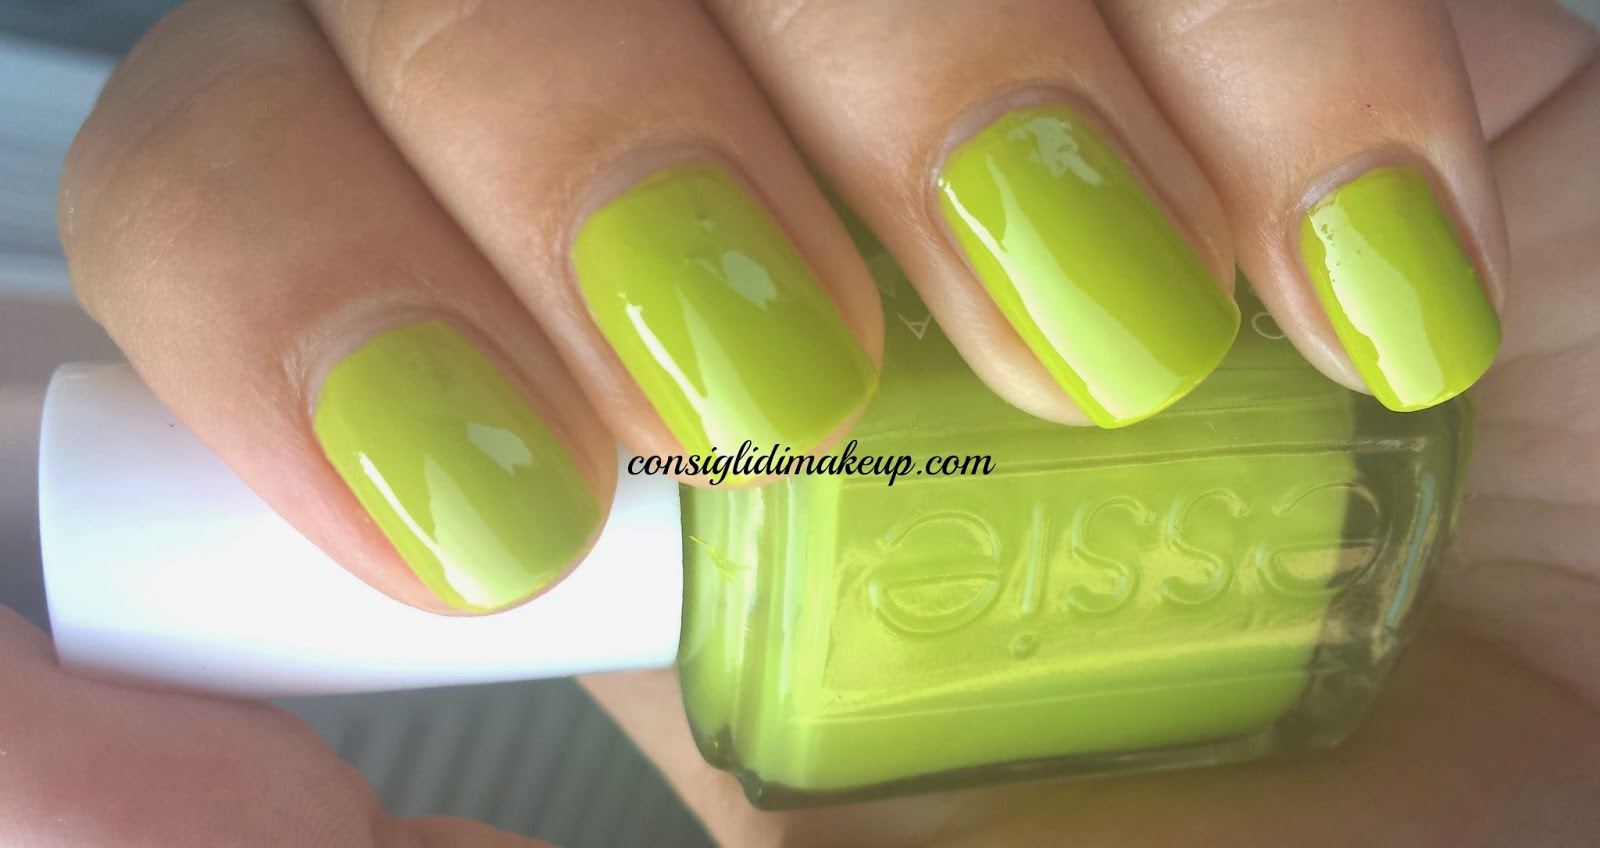 NOTD: The More The Merrier - Essie